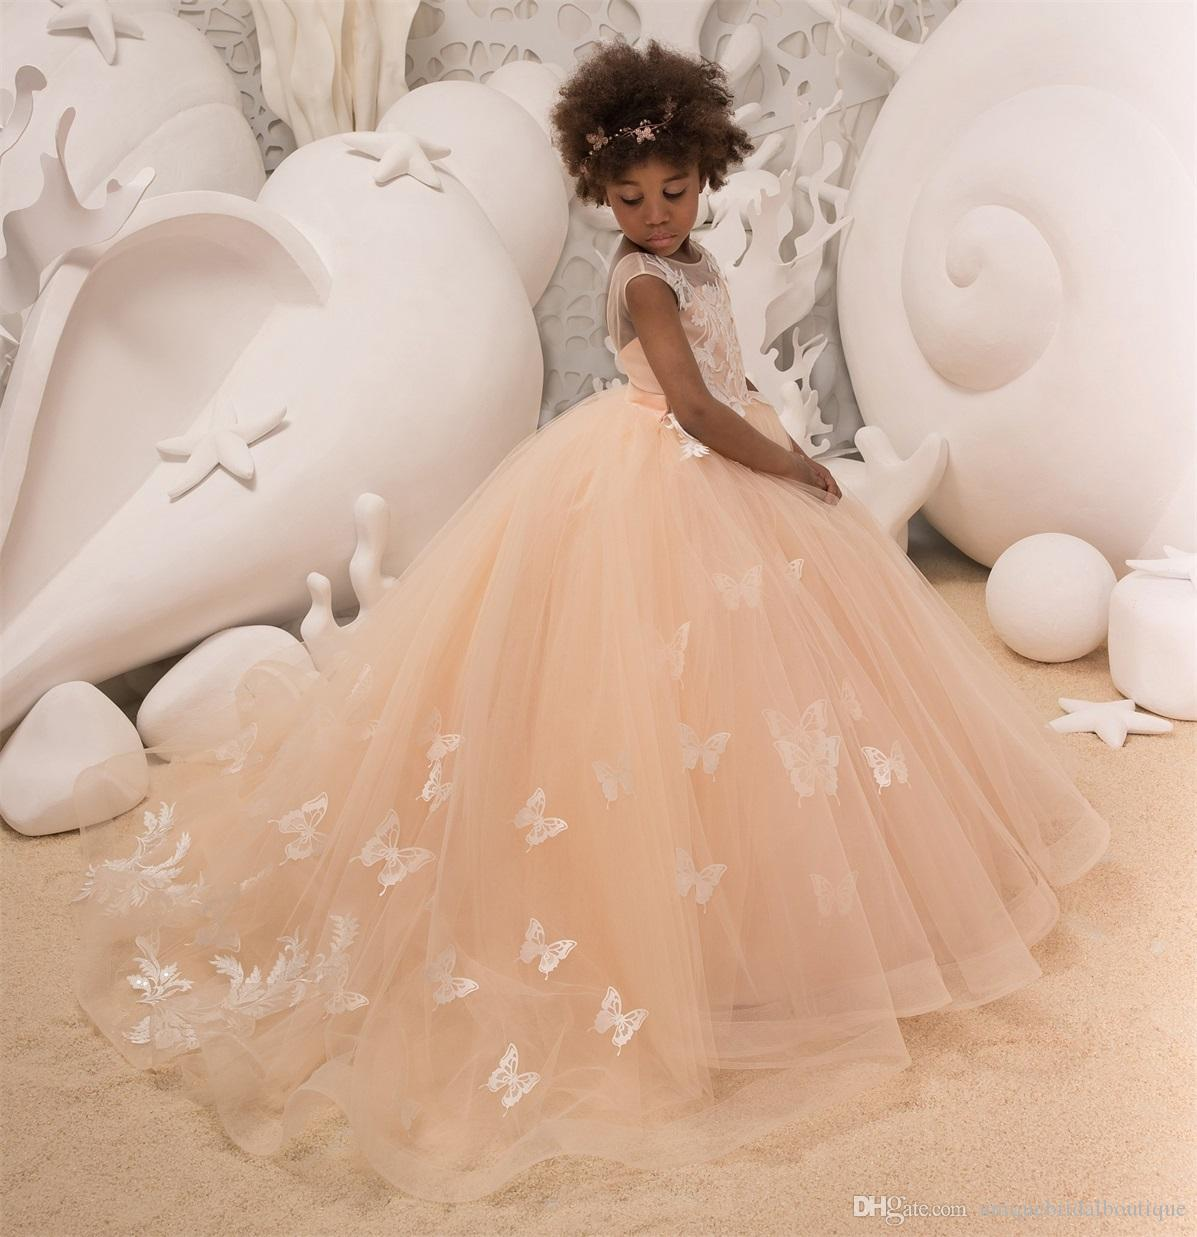 98593bb0049 Peach Flower Girls Dresses 2018 Butterfly Lace Appliques Ballgown Girls  Birthday Party Dress Jewel Neck Sweep Train Custom Made Flower Girl Ivory  Dresses ...